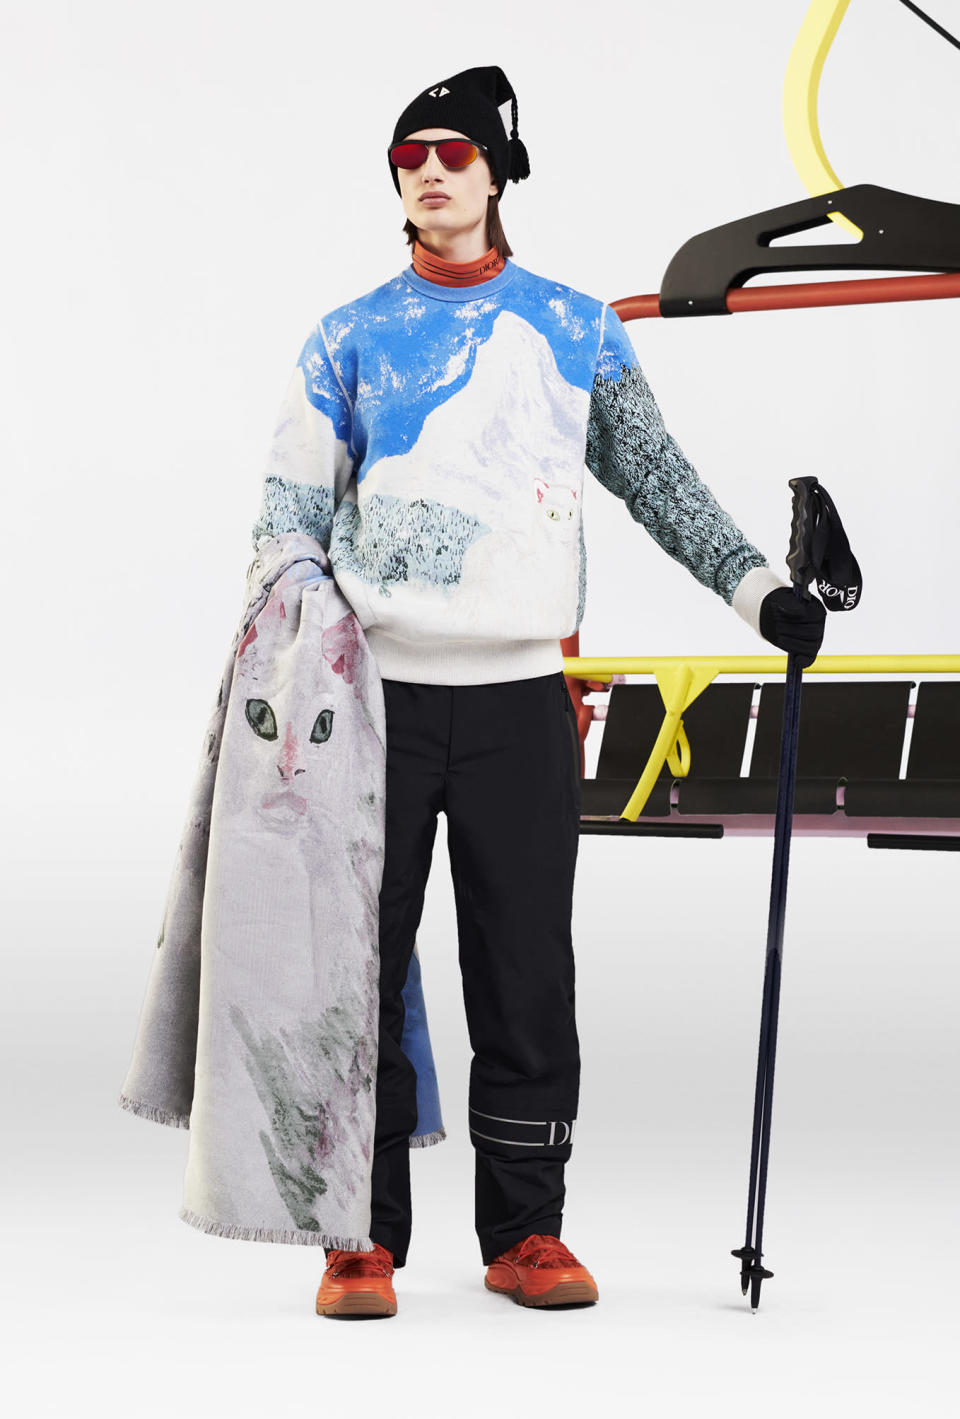 A look from Dior's men's ski capsule line designed with Peter Doig. - Credit: Brett Lloyd/Courtesy of Dior